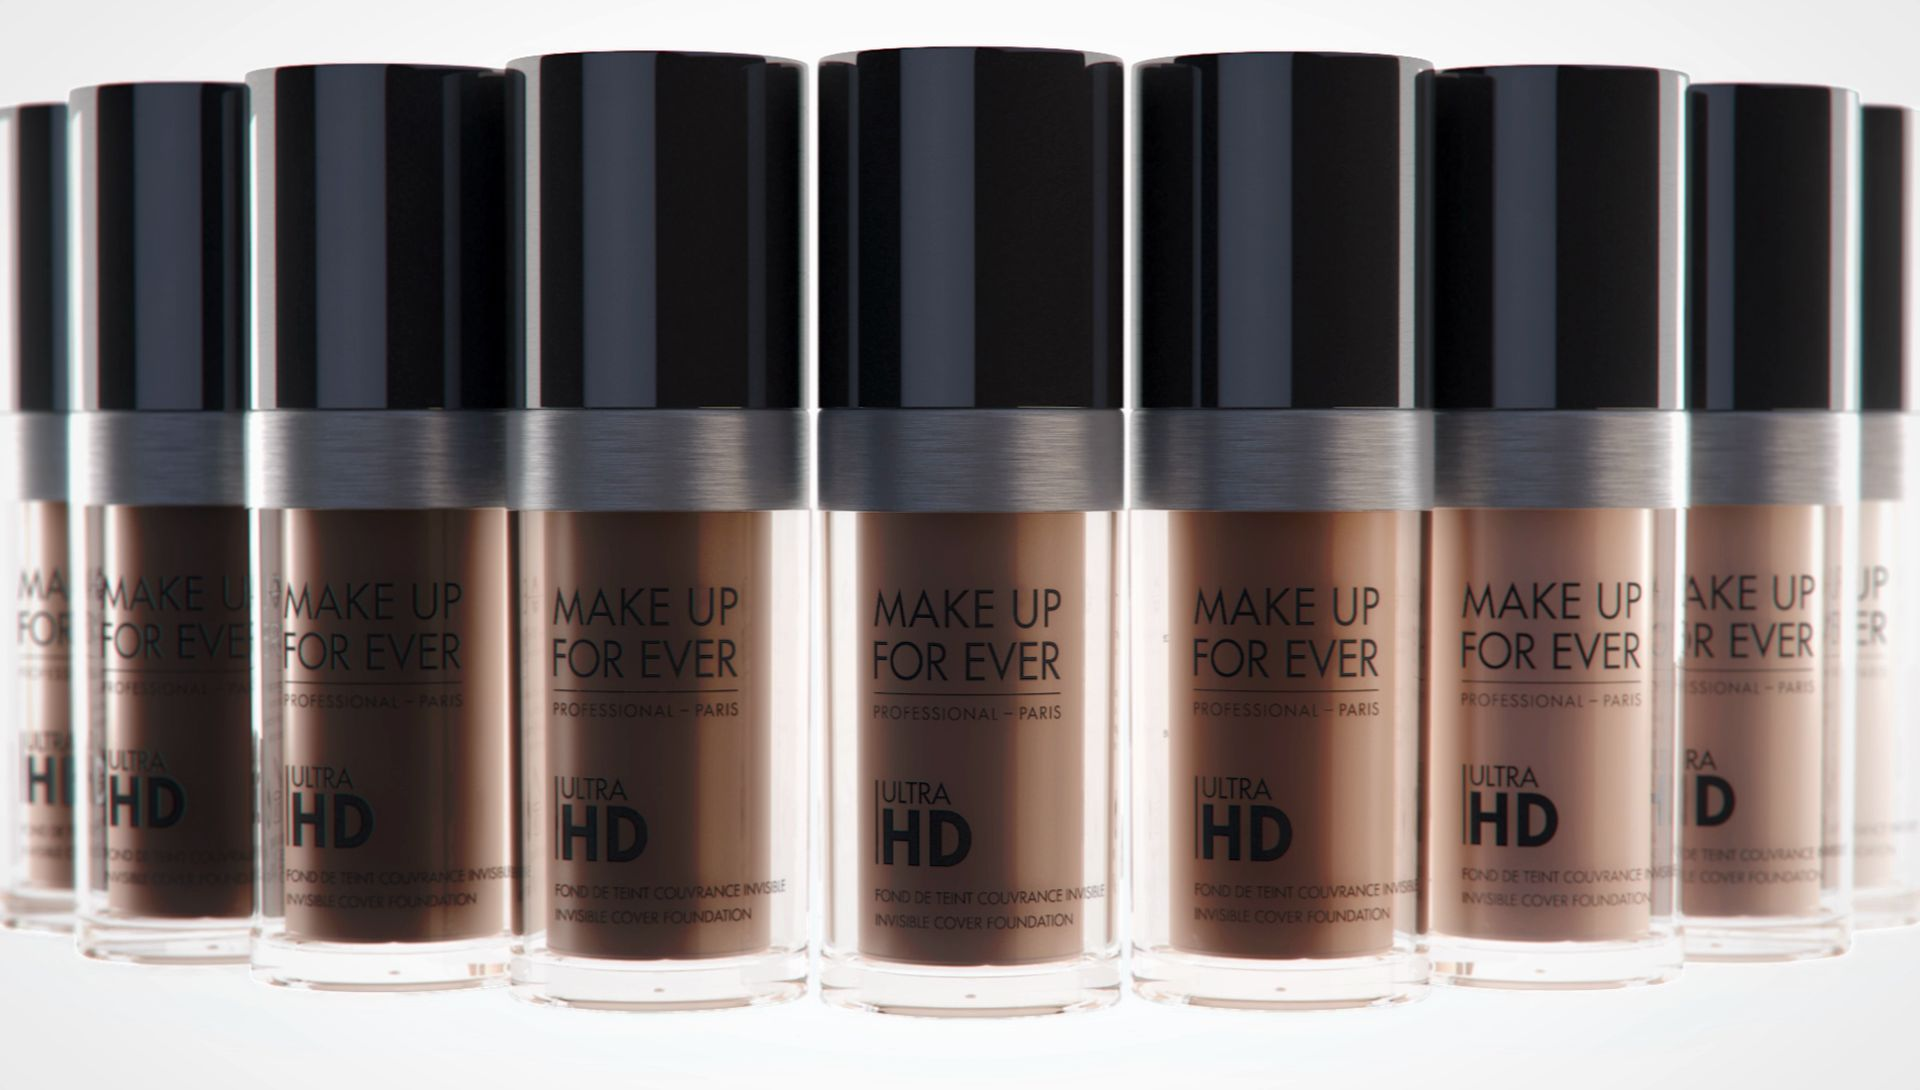 "<a href=""http://jonathan-carrier.com/portfolio/make-up-for-ever-uhd/"">Make Up For Ever - UHD</a>"